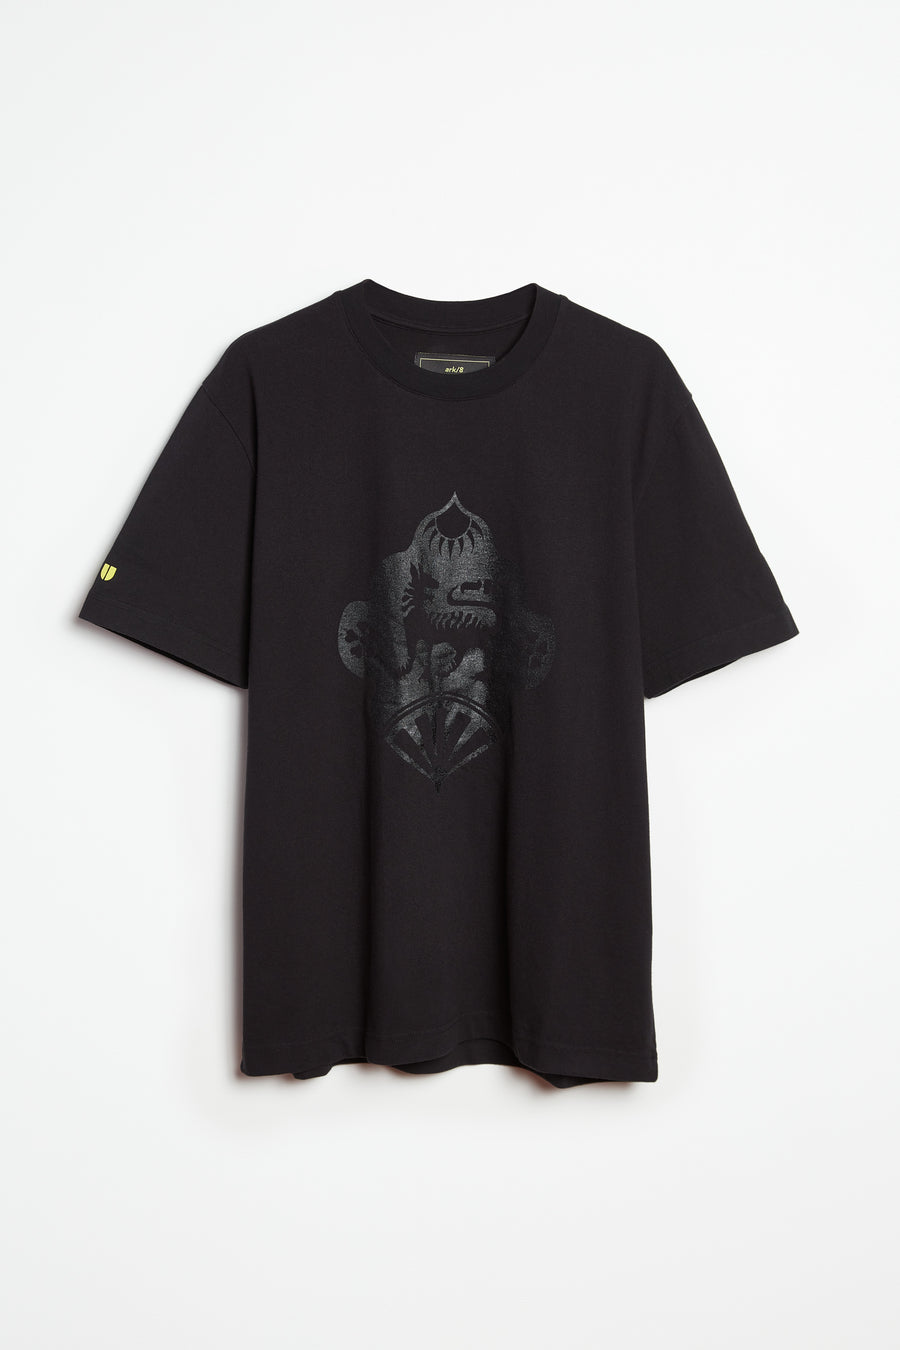 Destiny Europa Oversize Heavyweight T-shirt